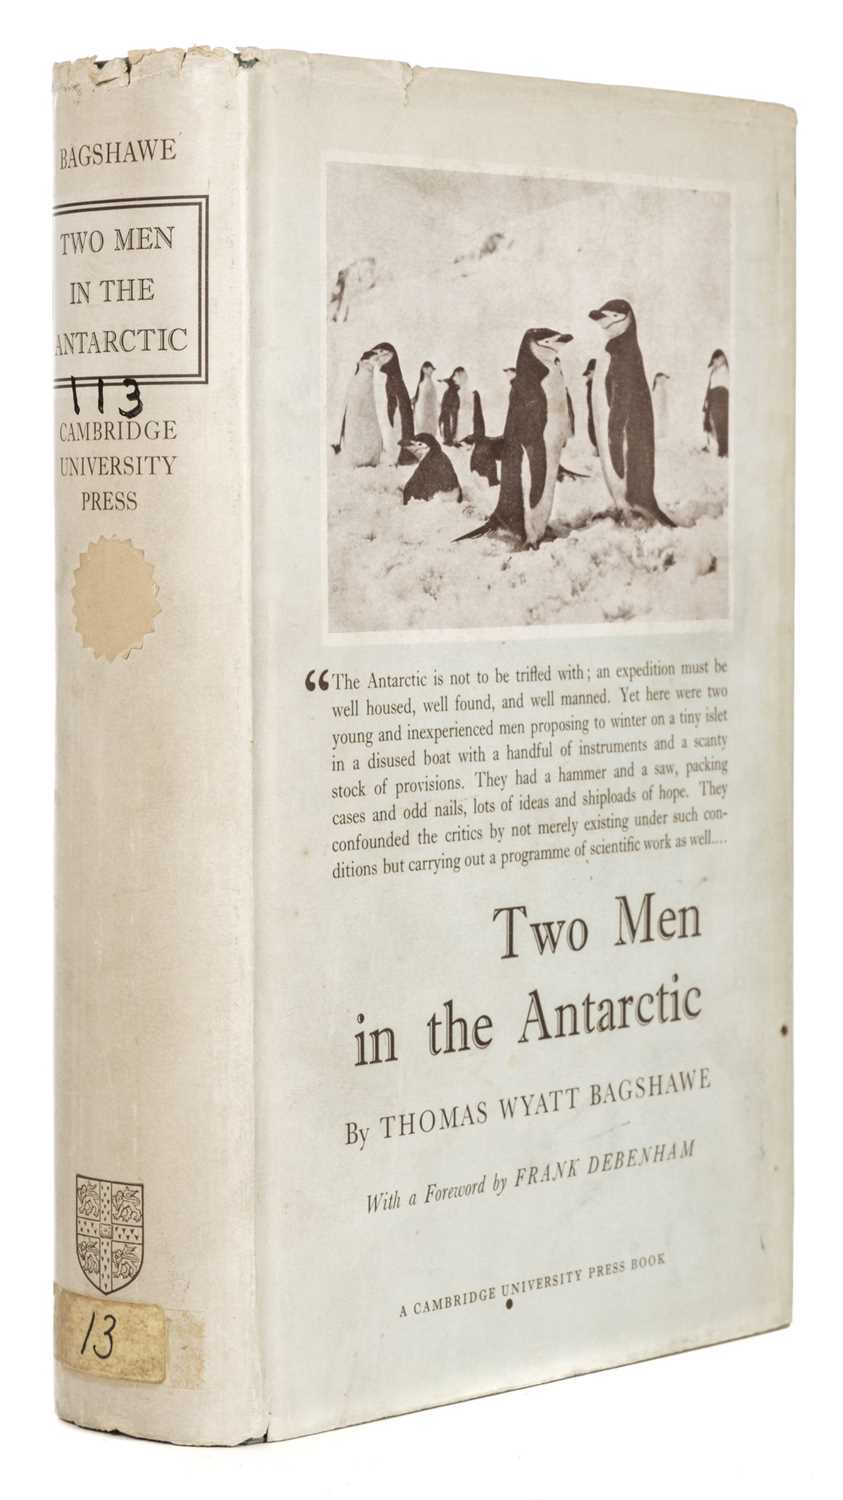 Lot 4 - Bagshawe (Thomas Wyatt). Two Men in the Antarctic, 1st edition, 1939